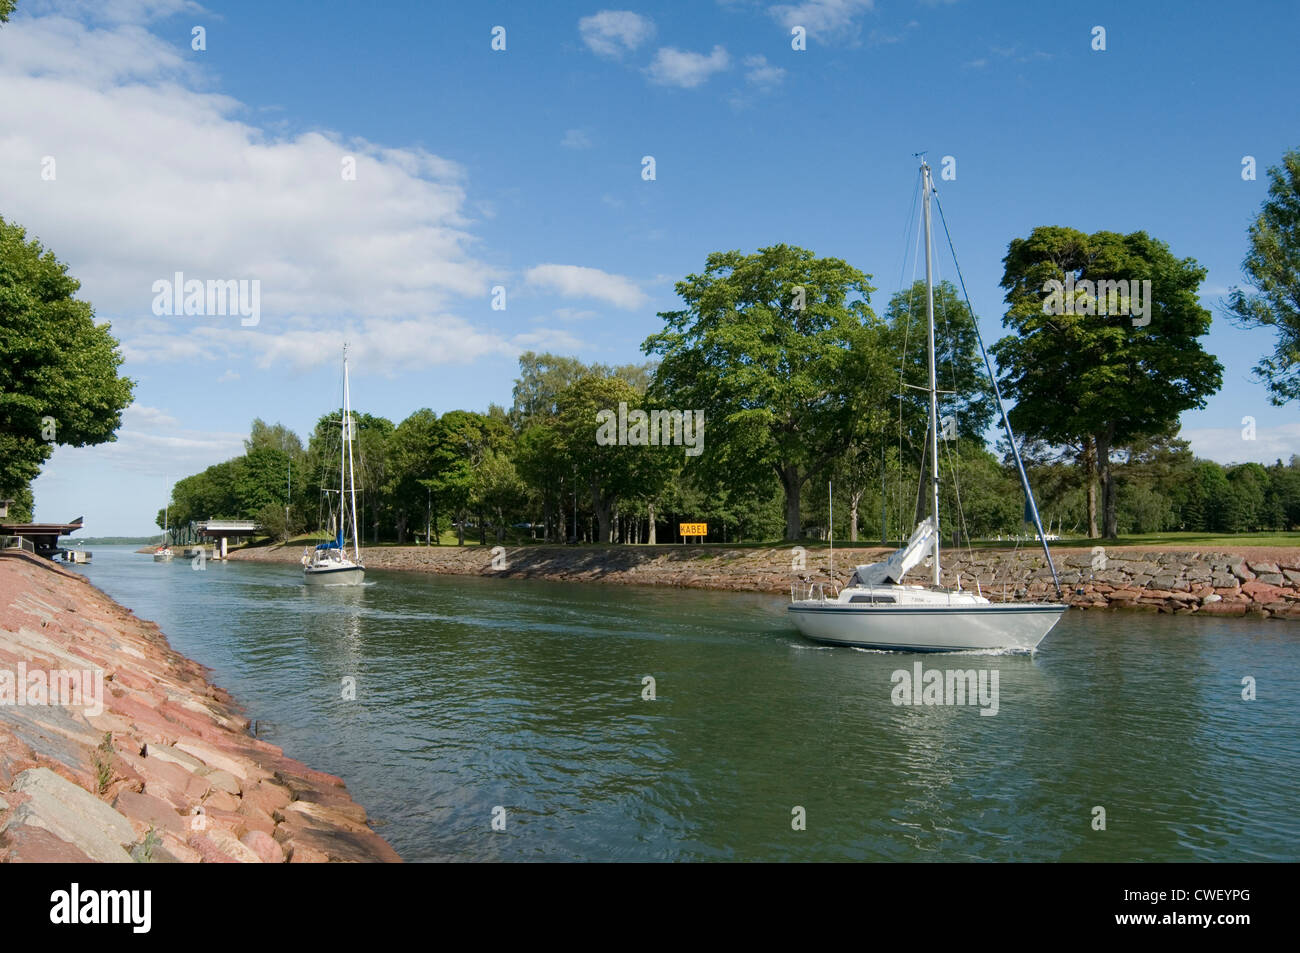 lemstroms kanal canal on aland island islands sweden baltic finland soumi holiday yacht yachting boat boats sailing - Stock Image